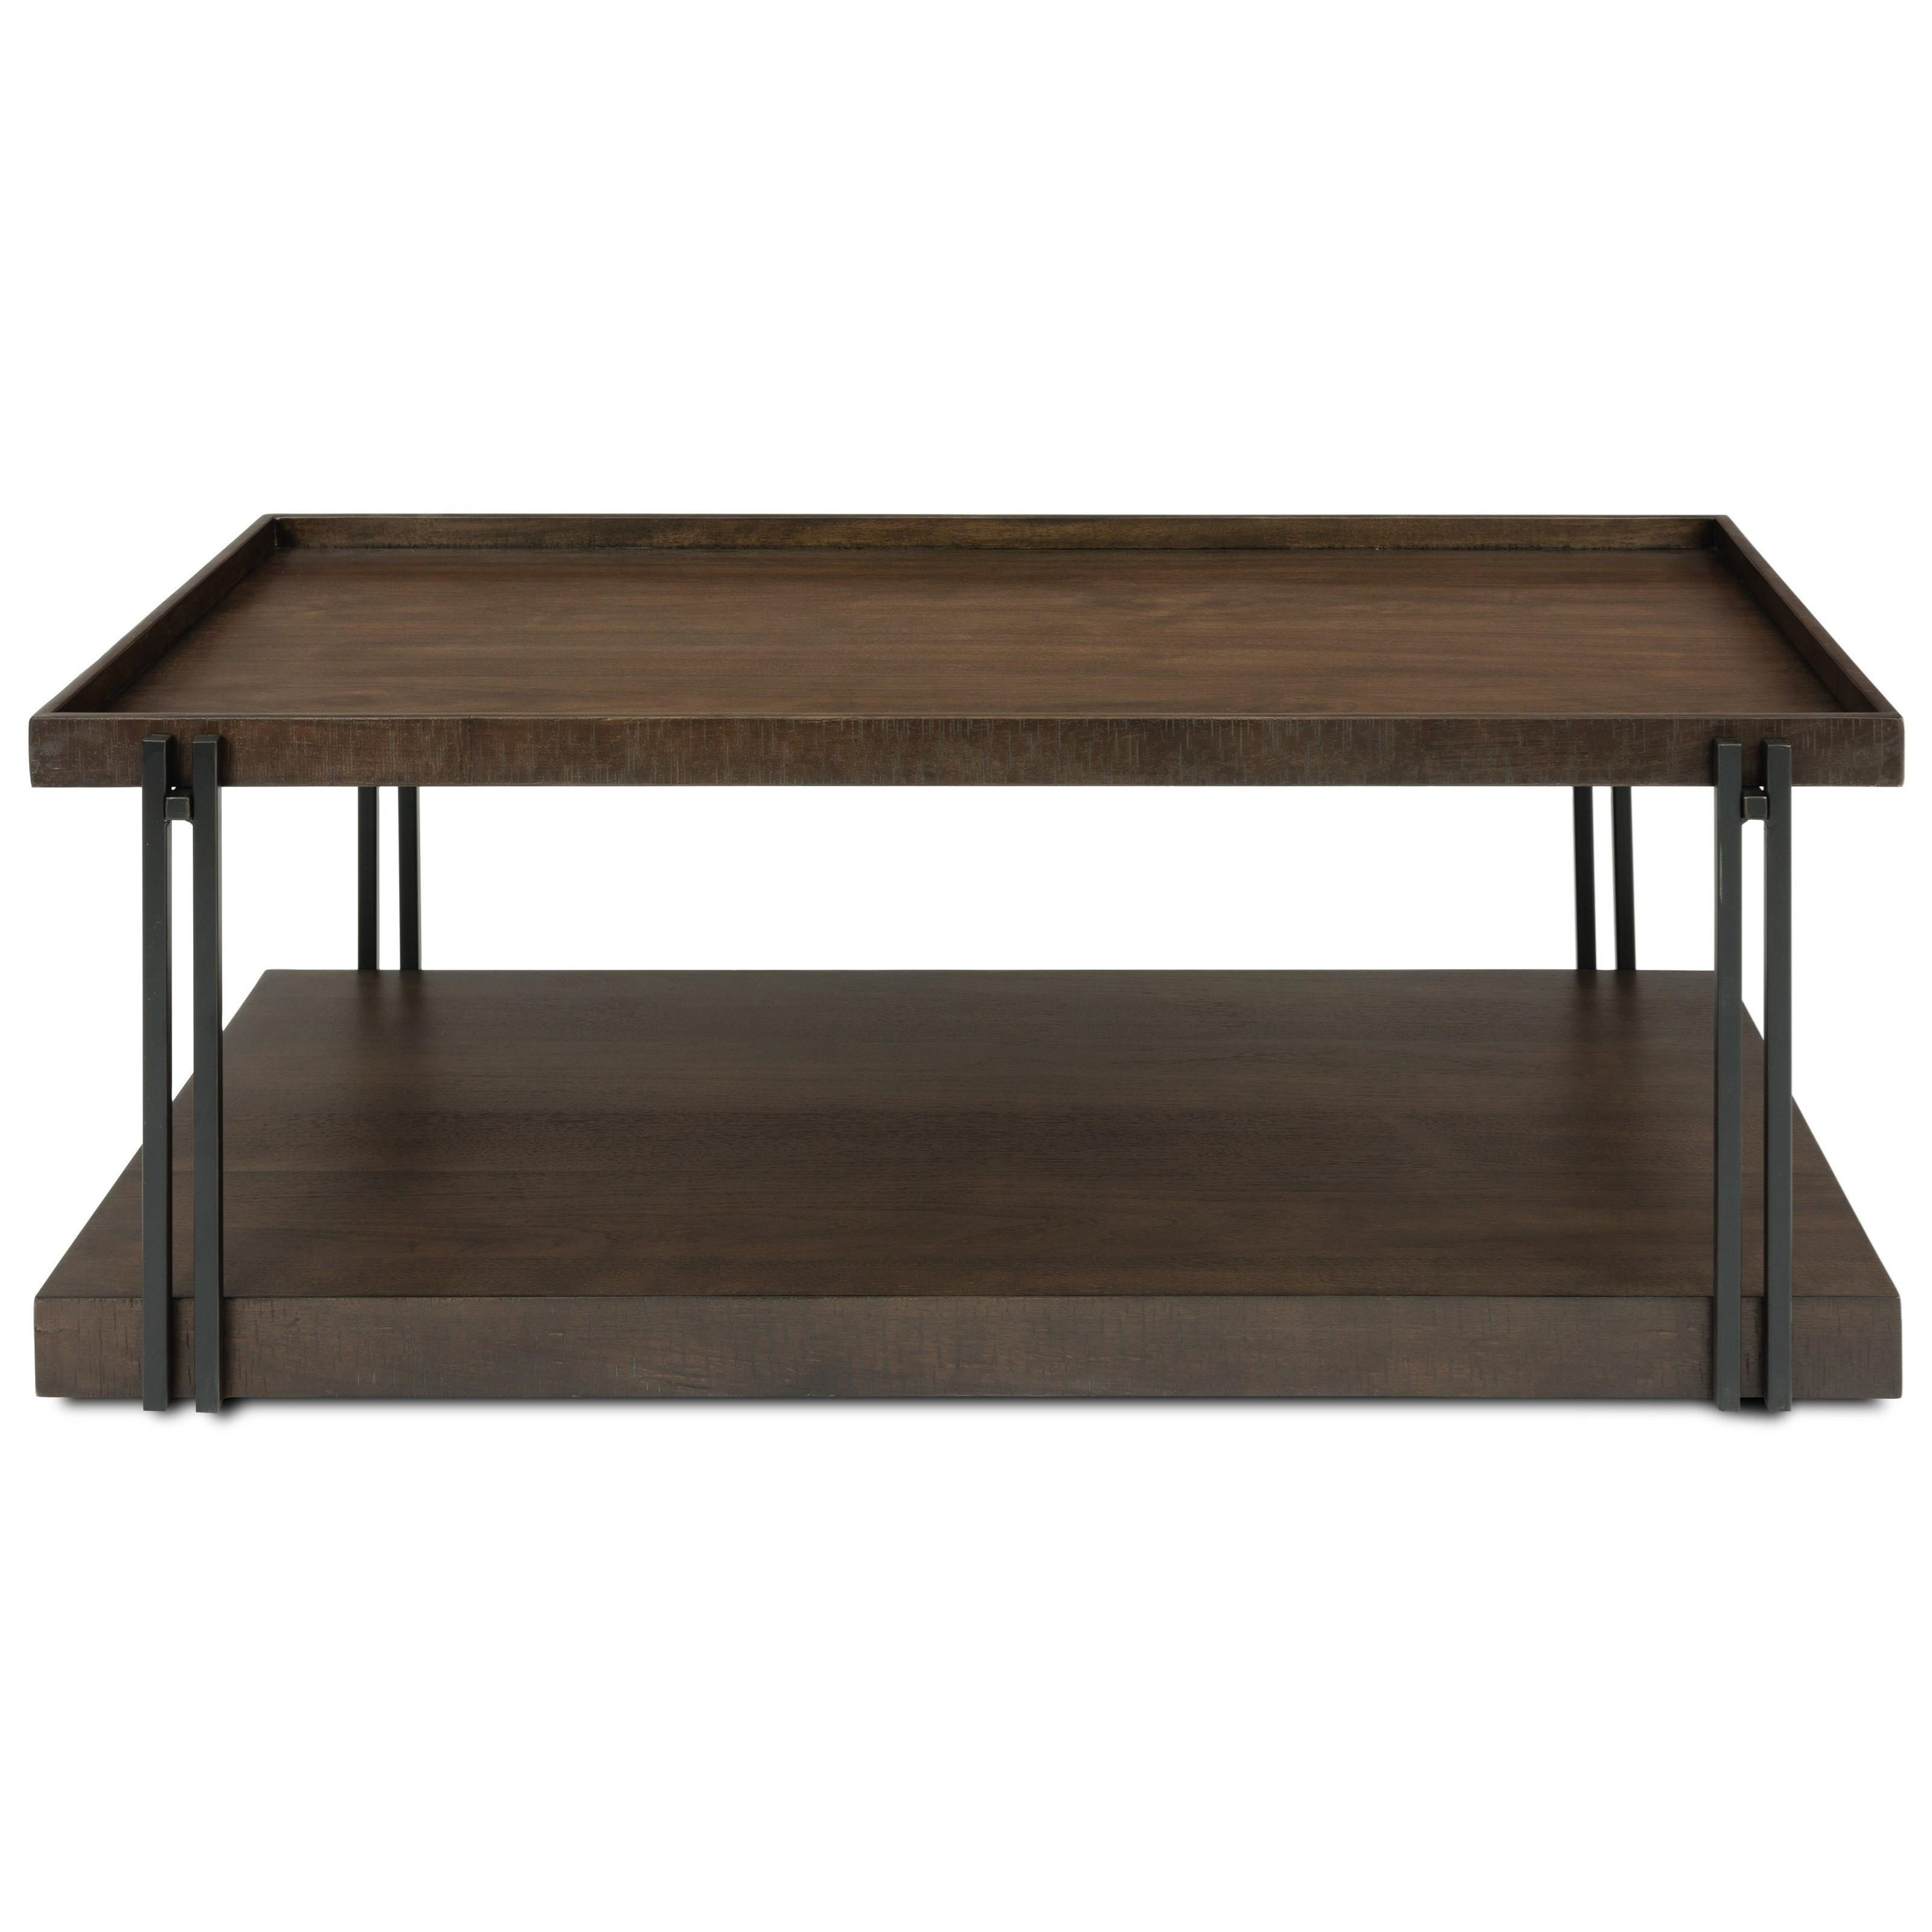 Prairie Rectangular Cocktail Table  by Flexsteel Wynwood Collection at Steger's Furniture